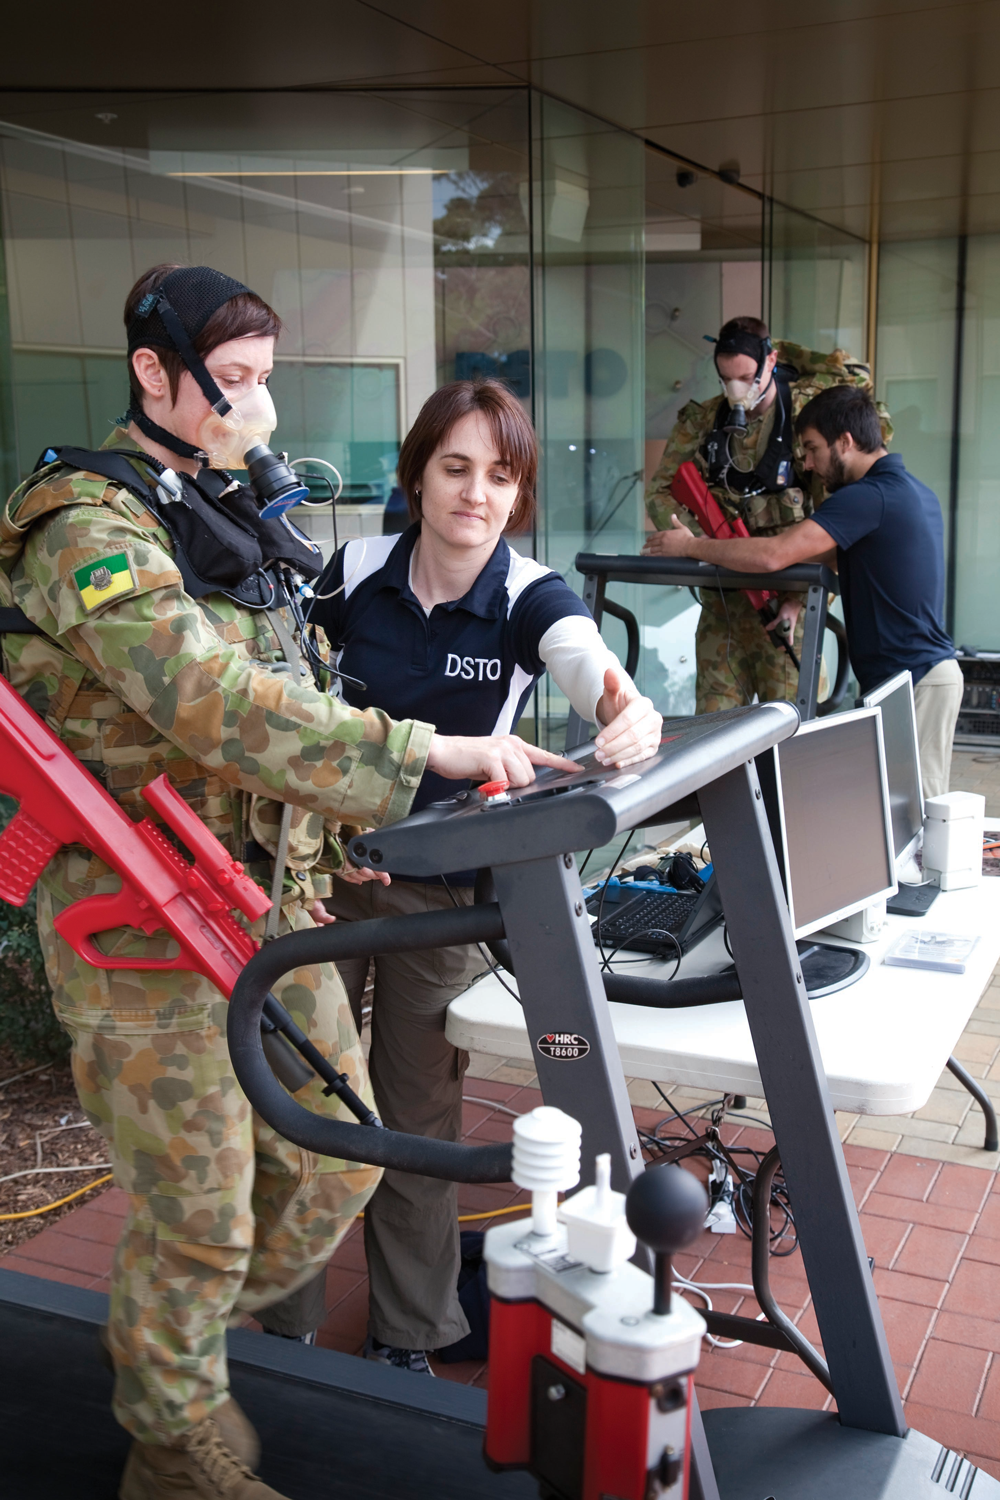 Biomechanics motion capture assists DSTO's studies into ADF personnel physical employment standards.